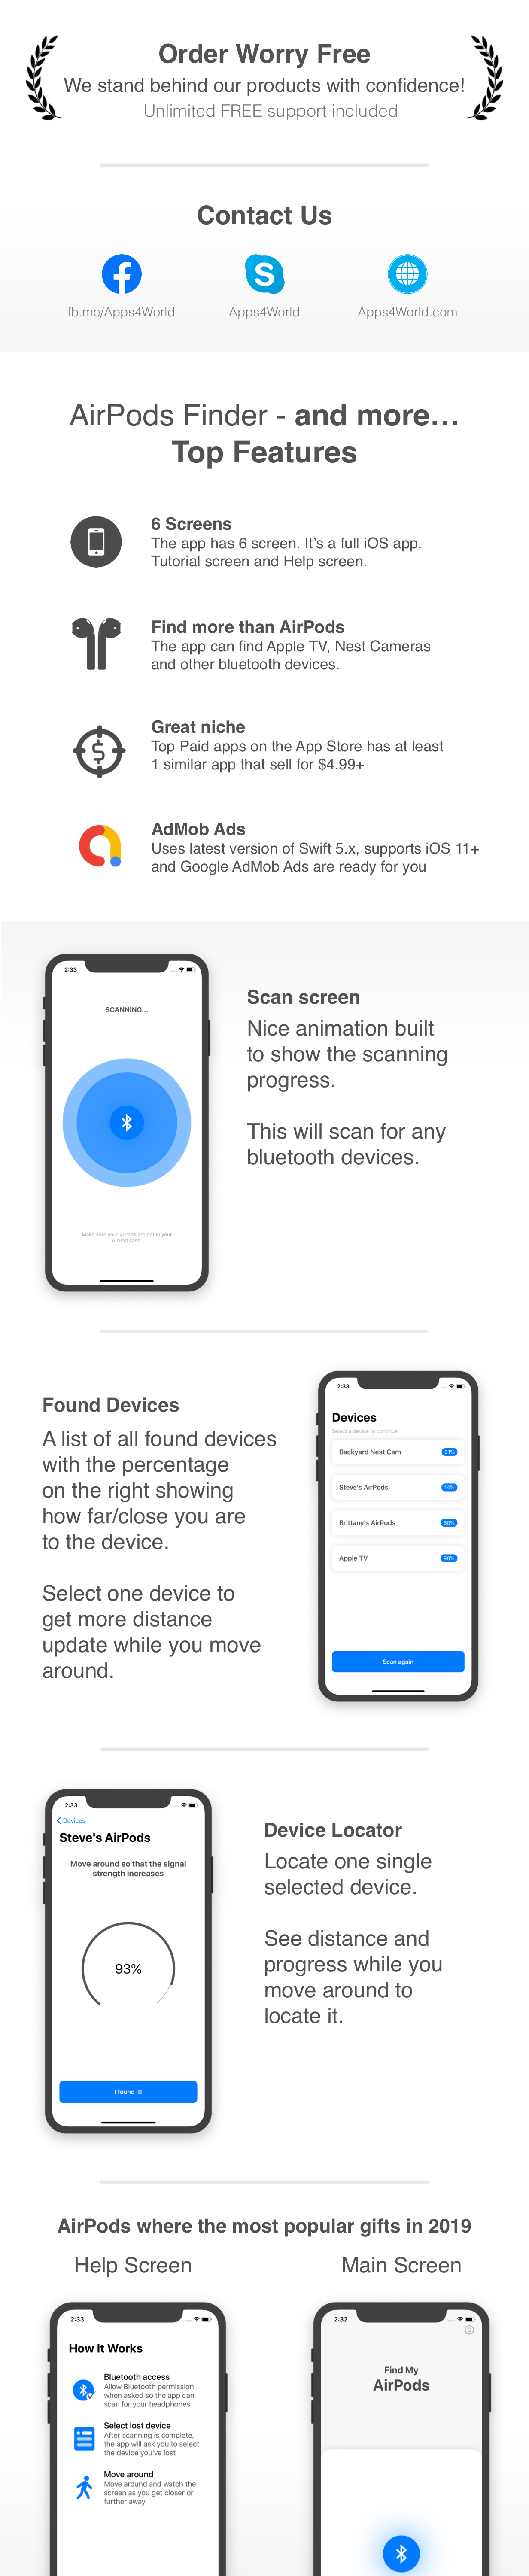 AirPods Finder - Locate lost Bluetooth Devices - Full iOS app - 1